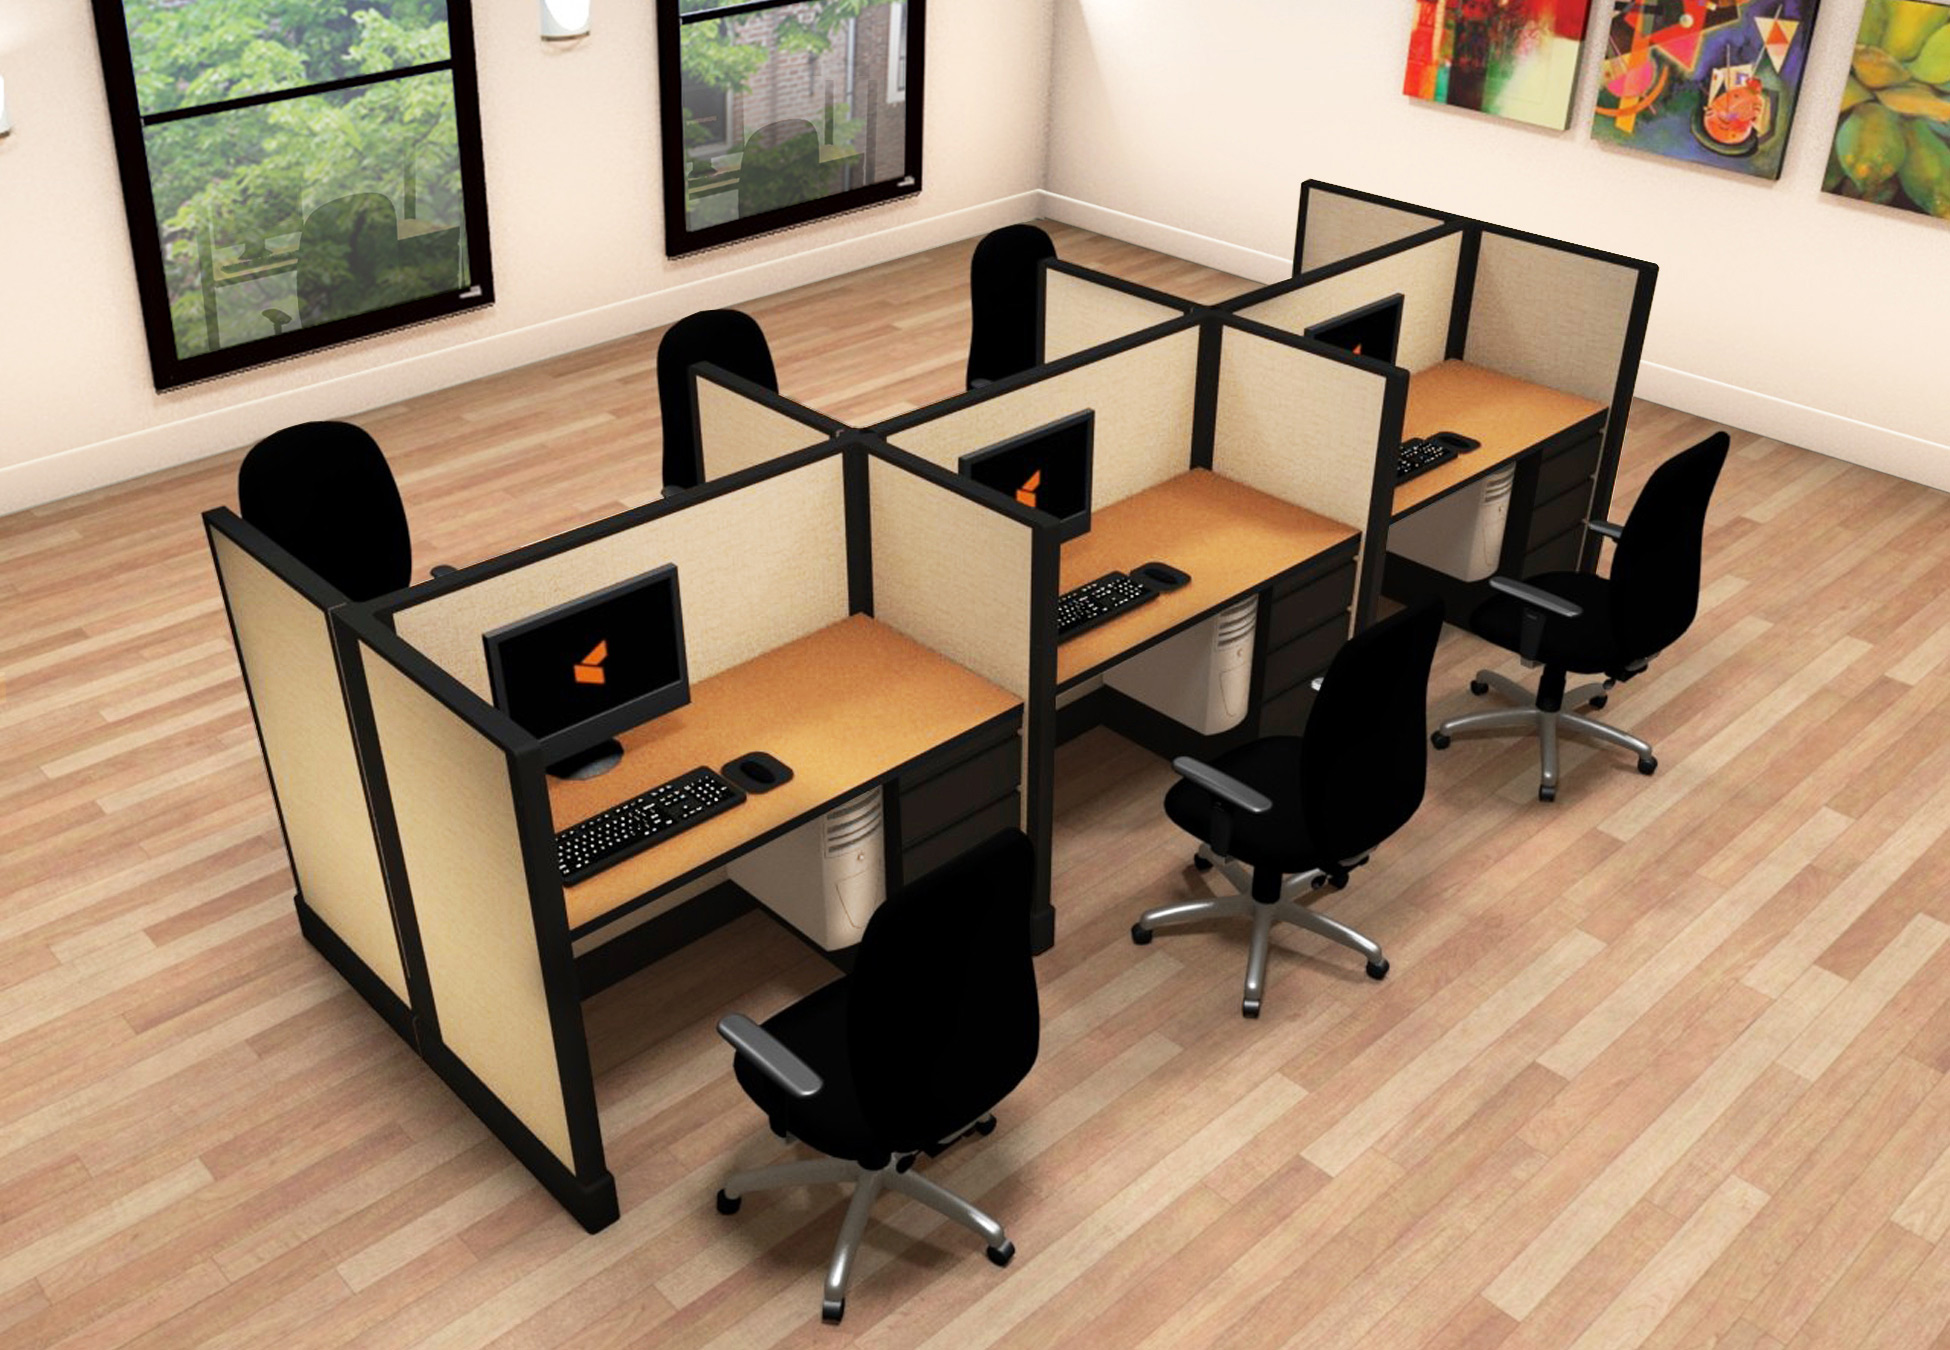 2x4 Small Office Furniture - 6 Pack Cluster